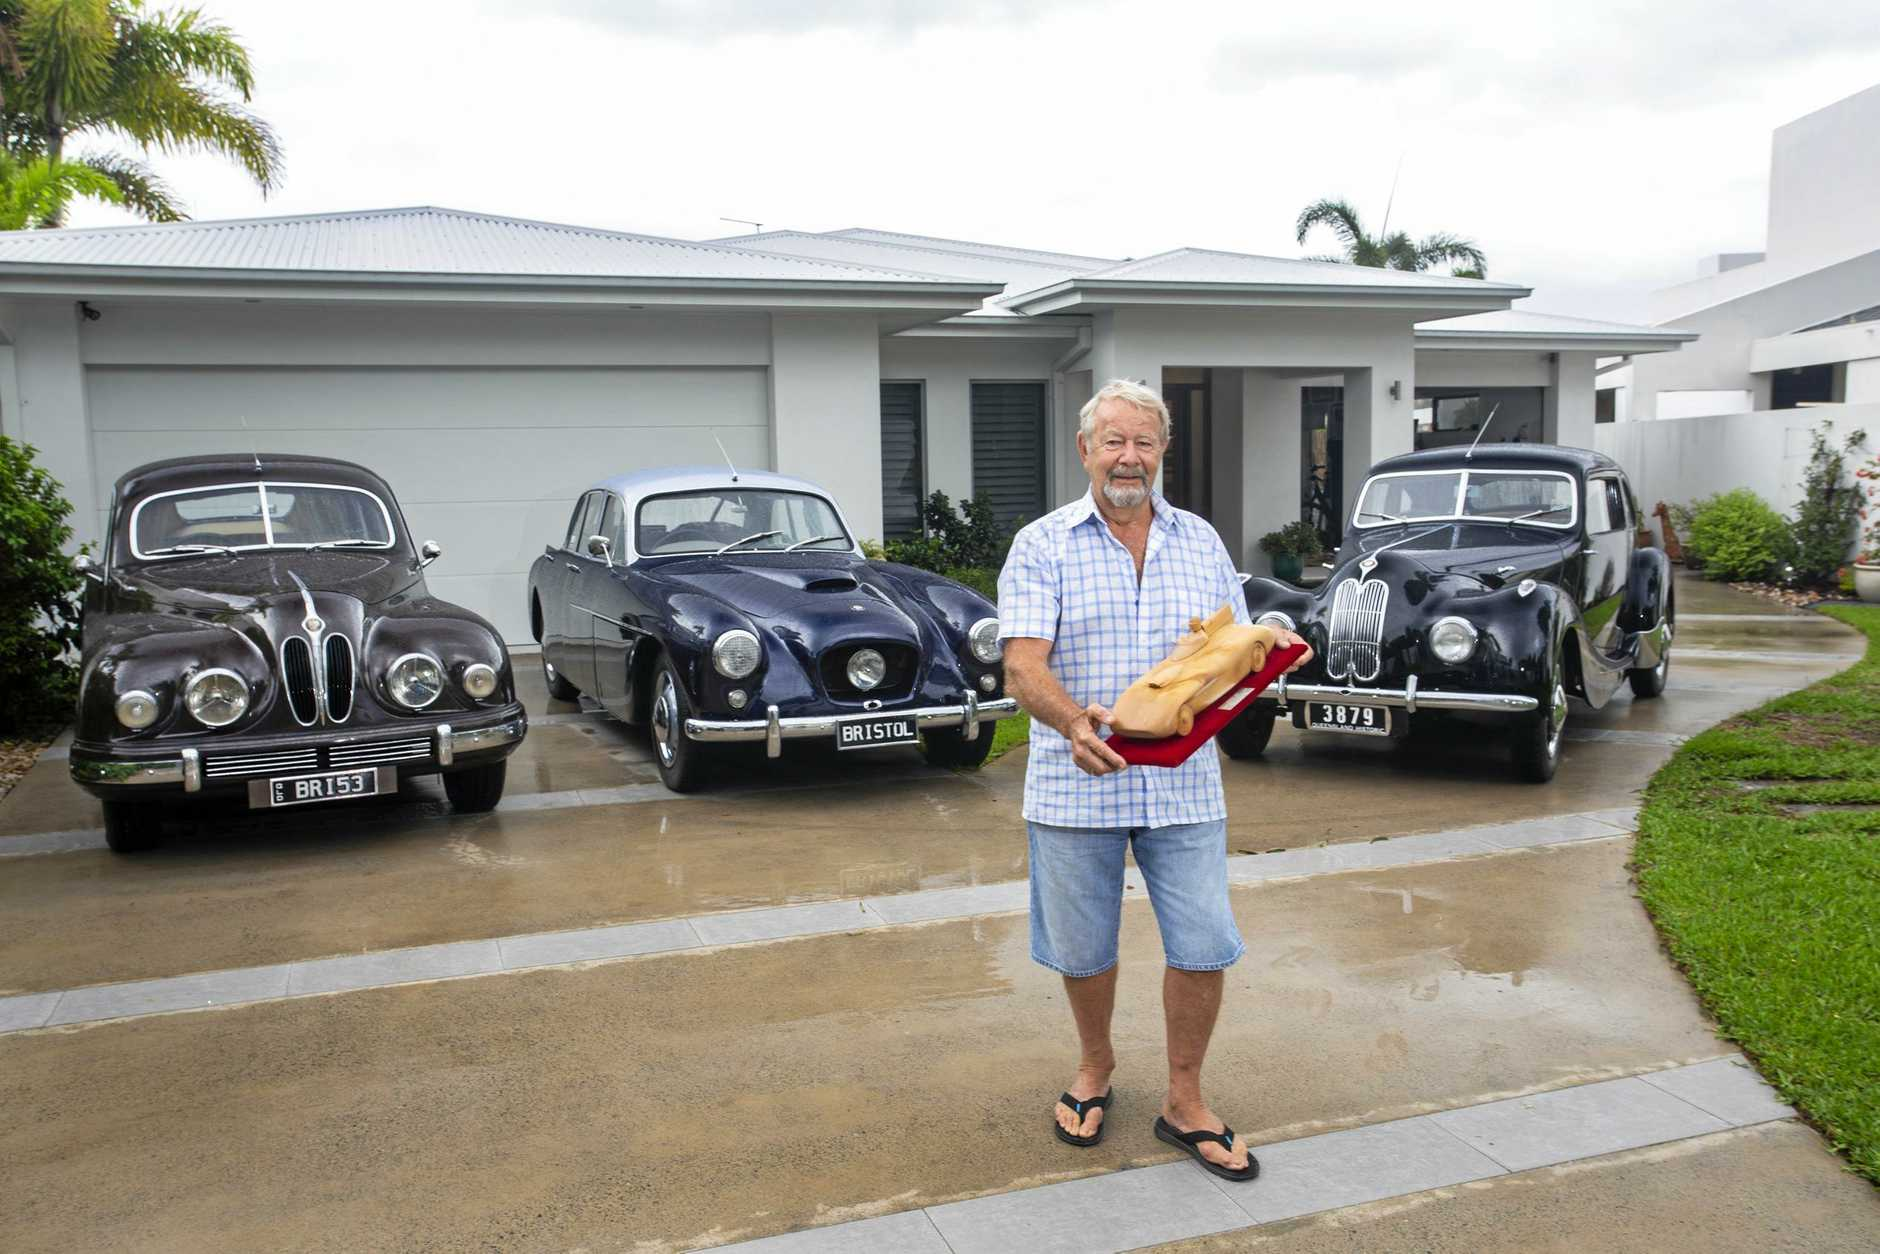 Noosa's Rob van Wegen who owns three Bristols: a 1948 400, a 1953 403 and a 1954 405.